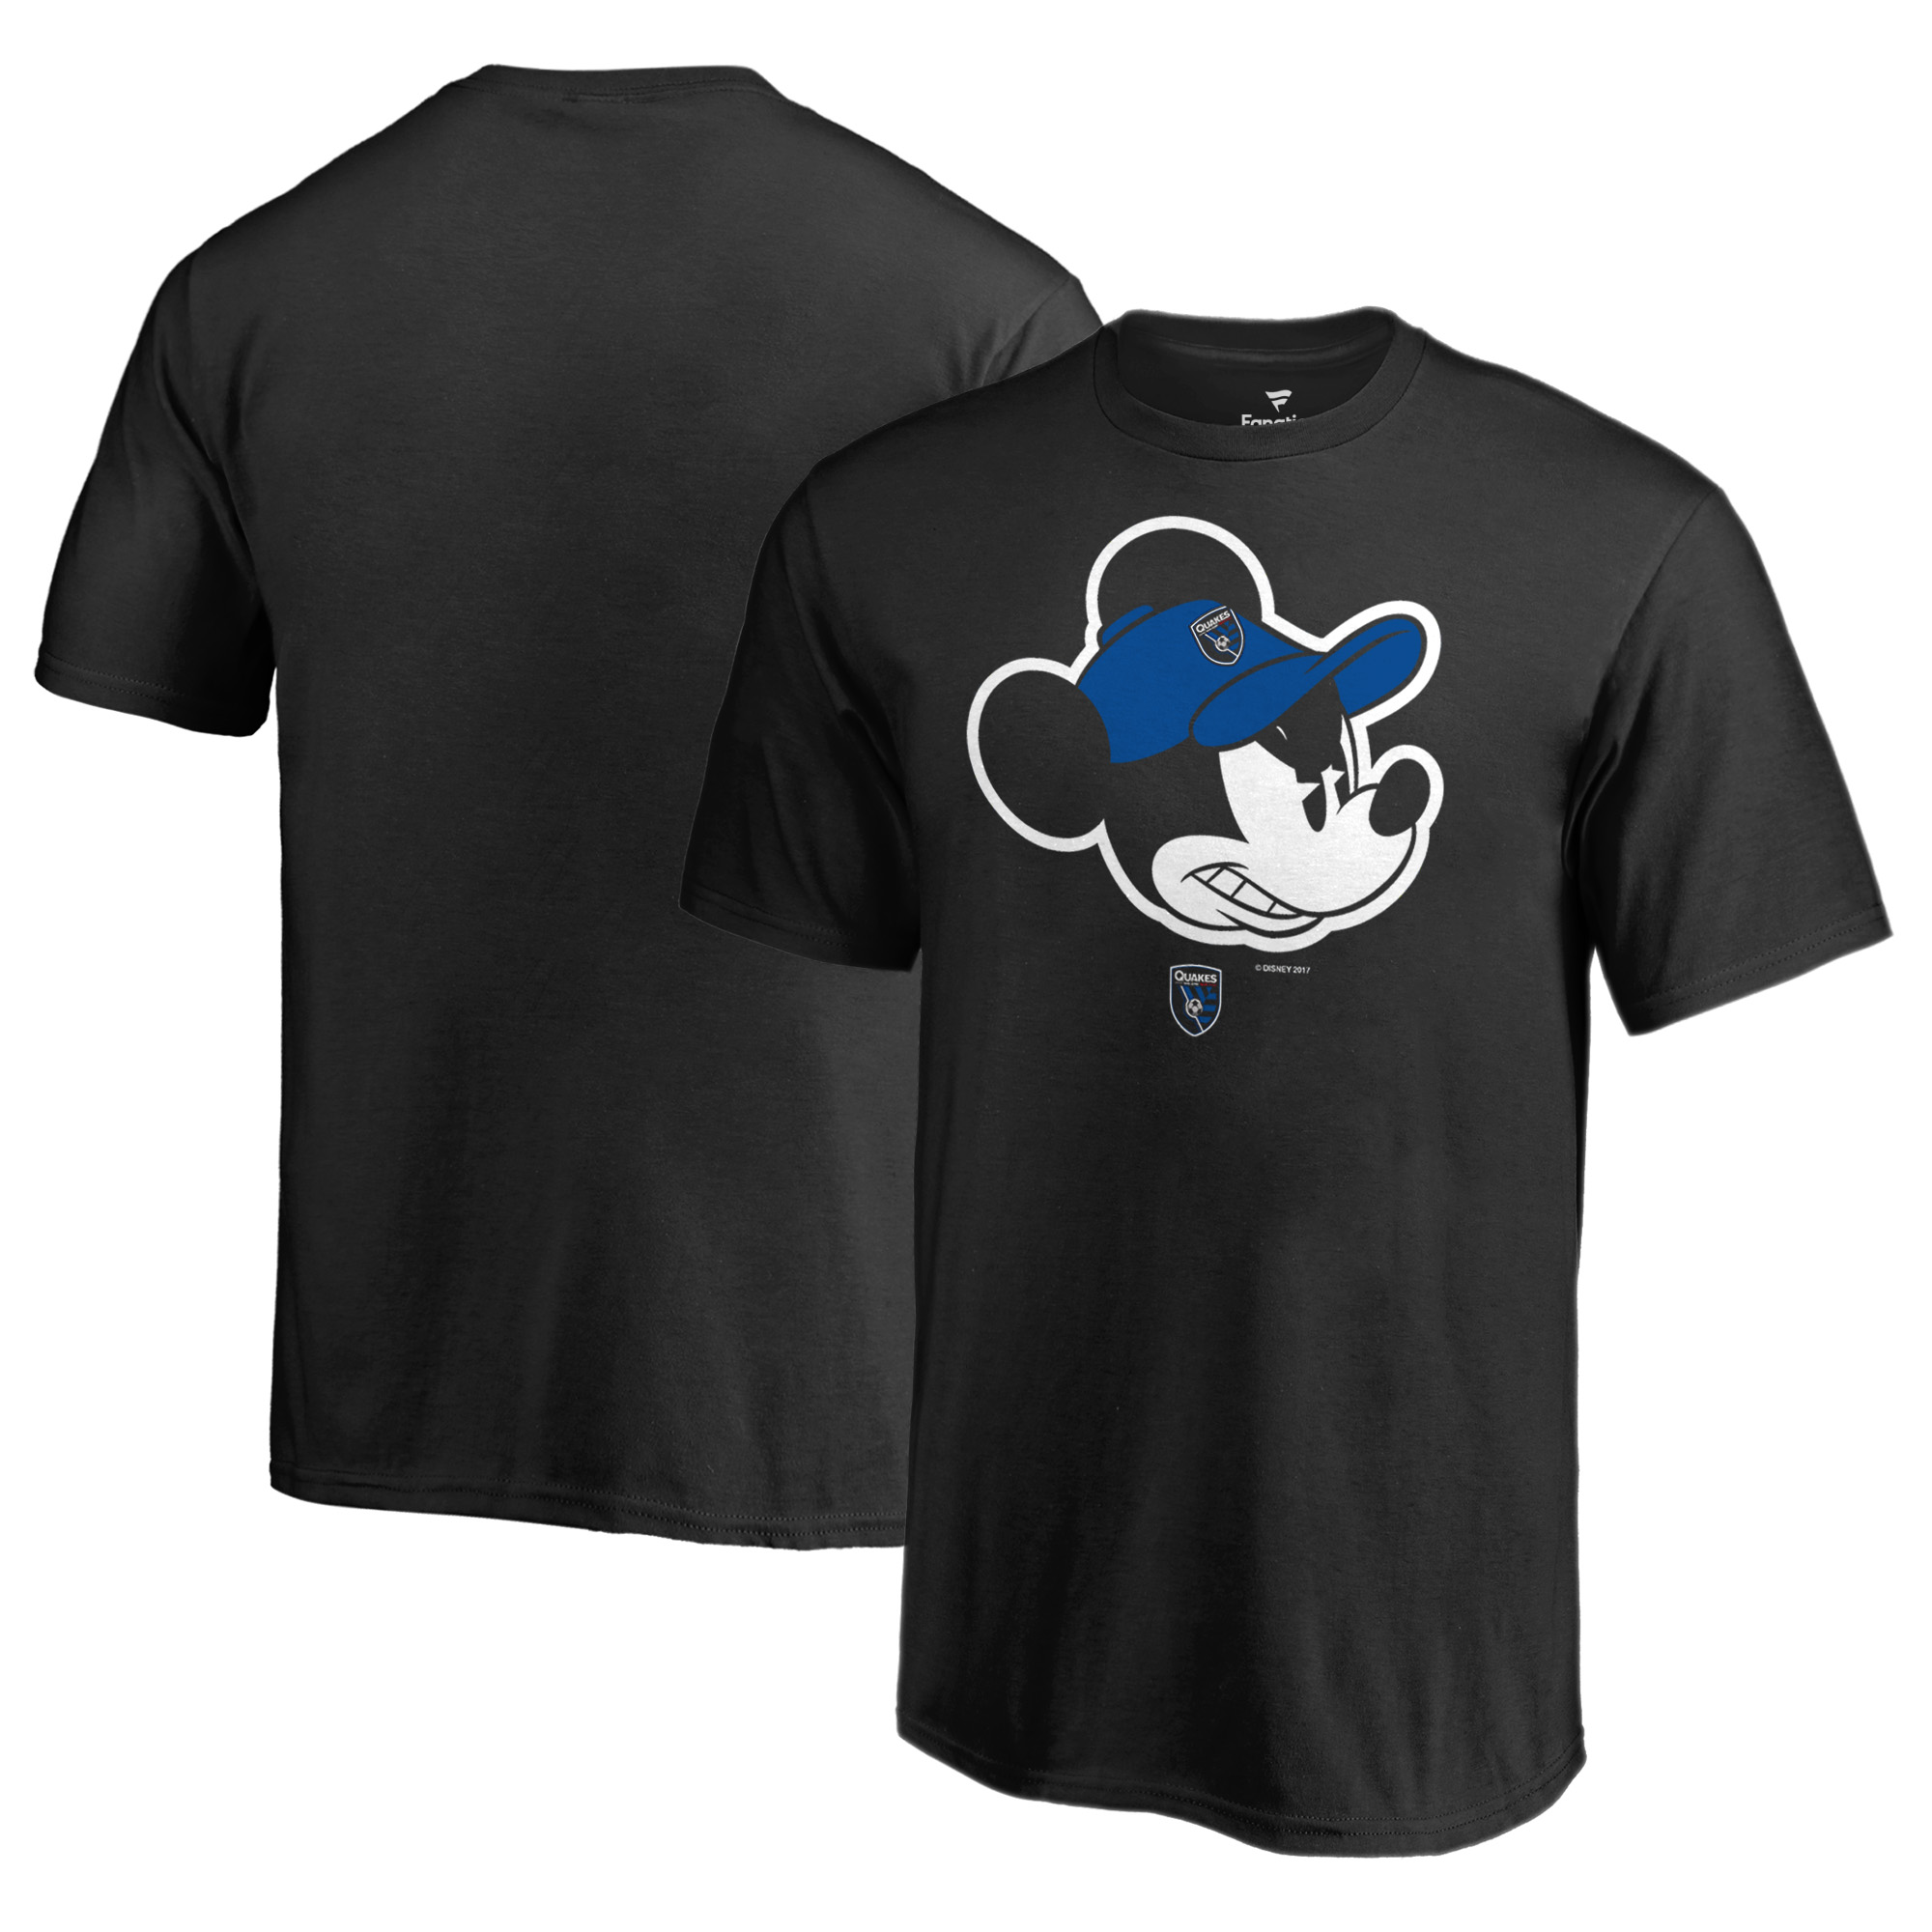 San Jose Earthquakes Fanatics Branded Youth Disney Game Face T-Shirt - Black